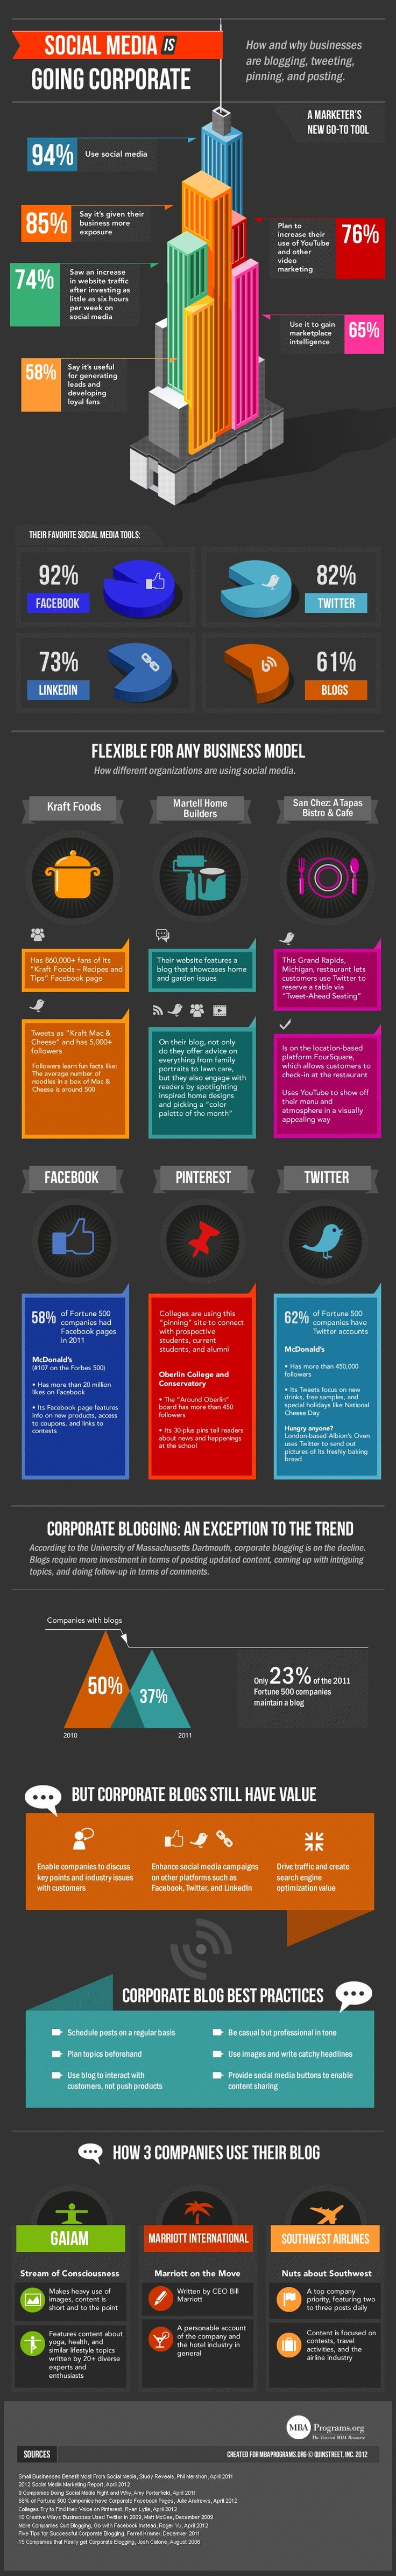 Social Media Is Going Corporate [INFOGRAPHIC]: B2B Social, Corporate Infographic, Website, Social Media, Media Marketing, Corporate Social, Media Infographic, Internet Site, Infographics Socialmedia